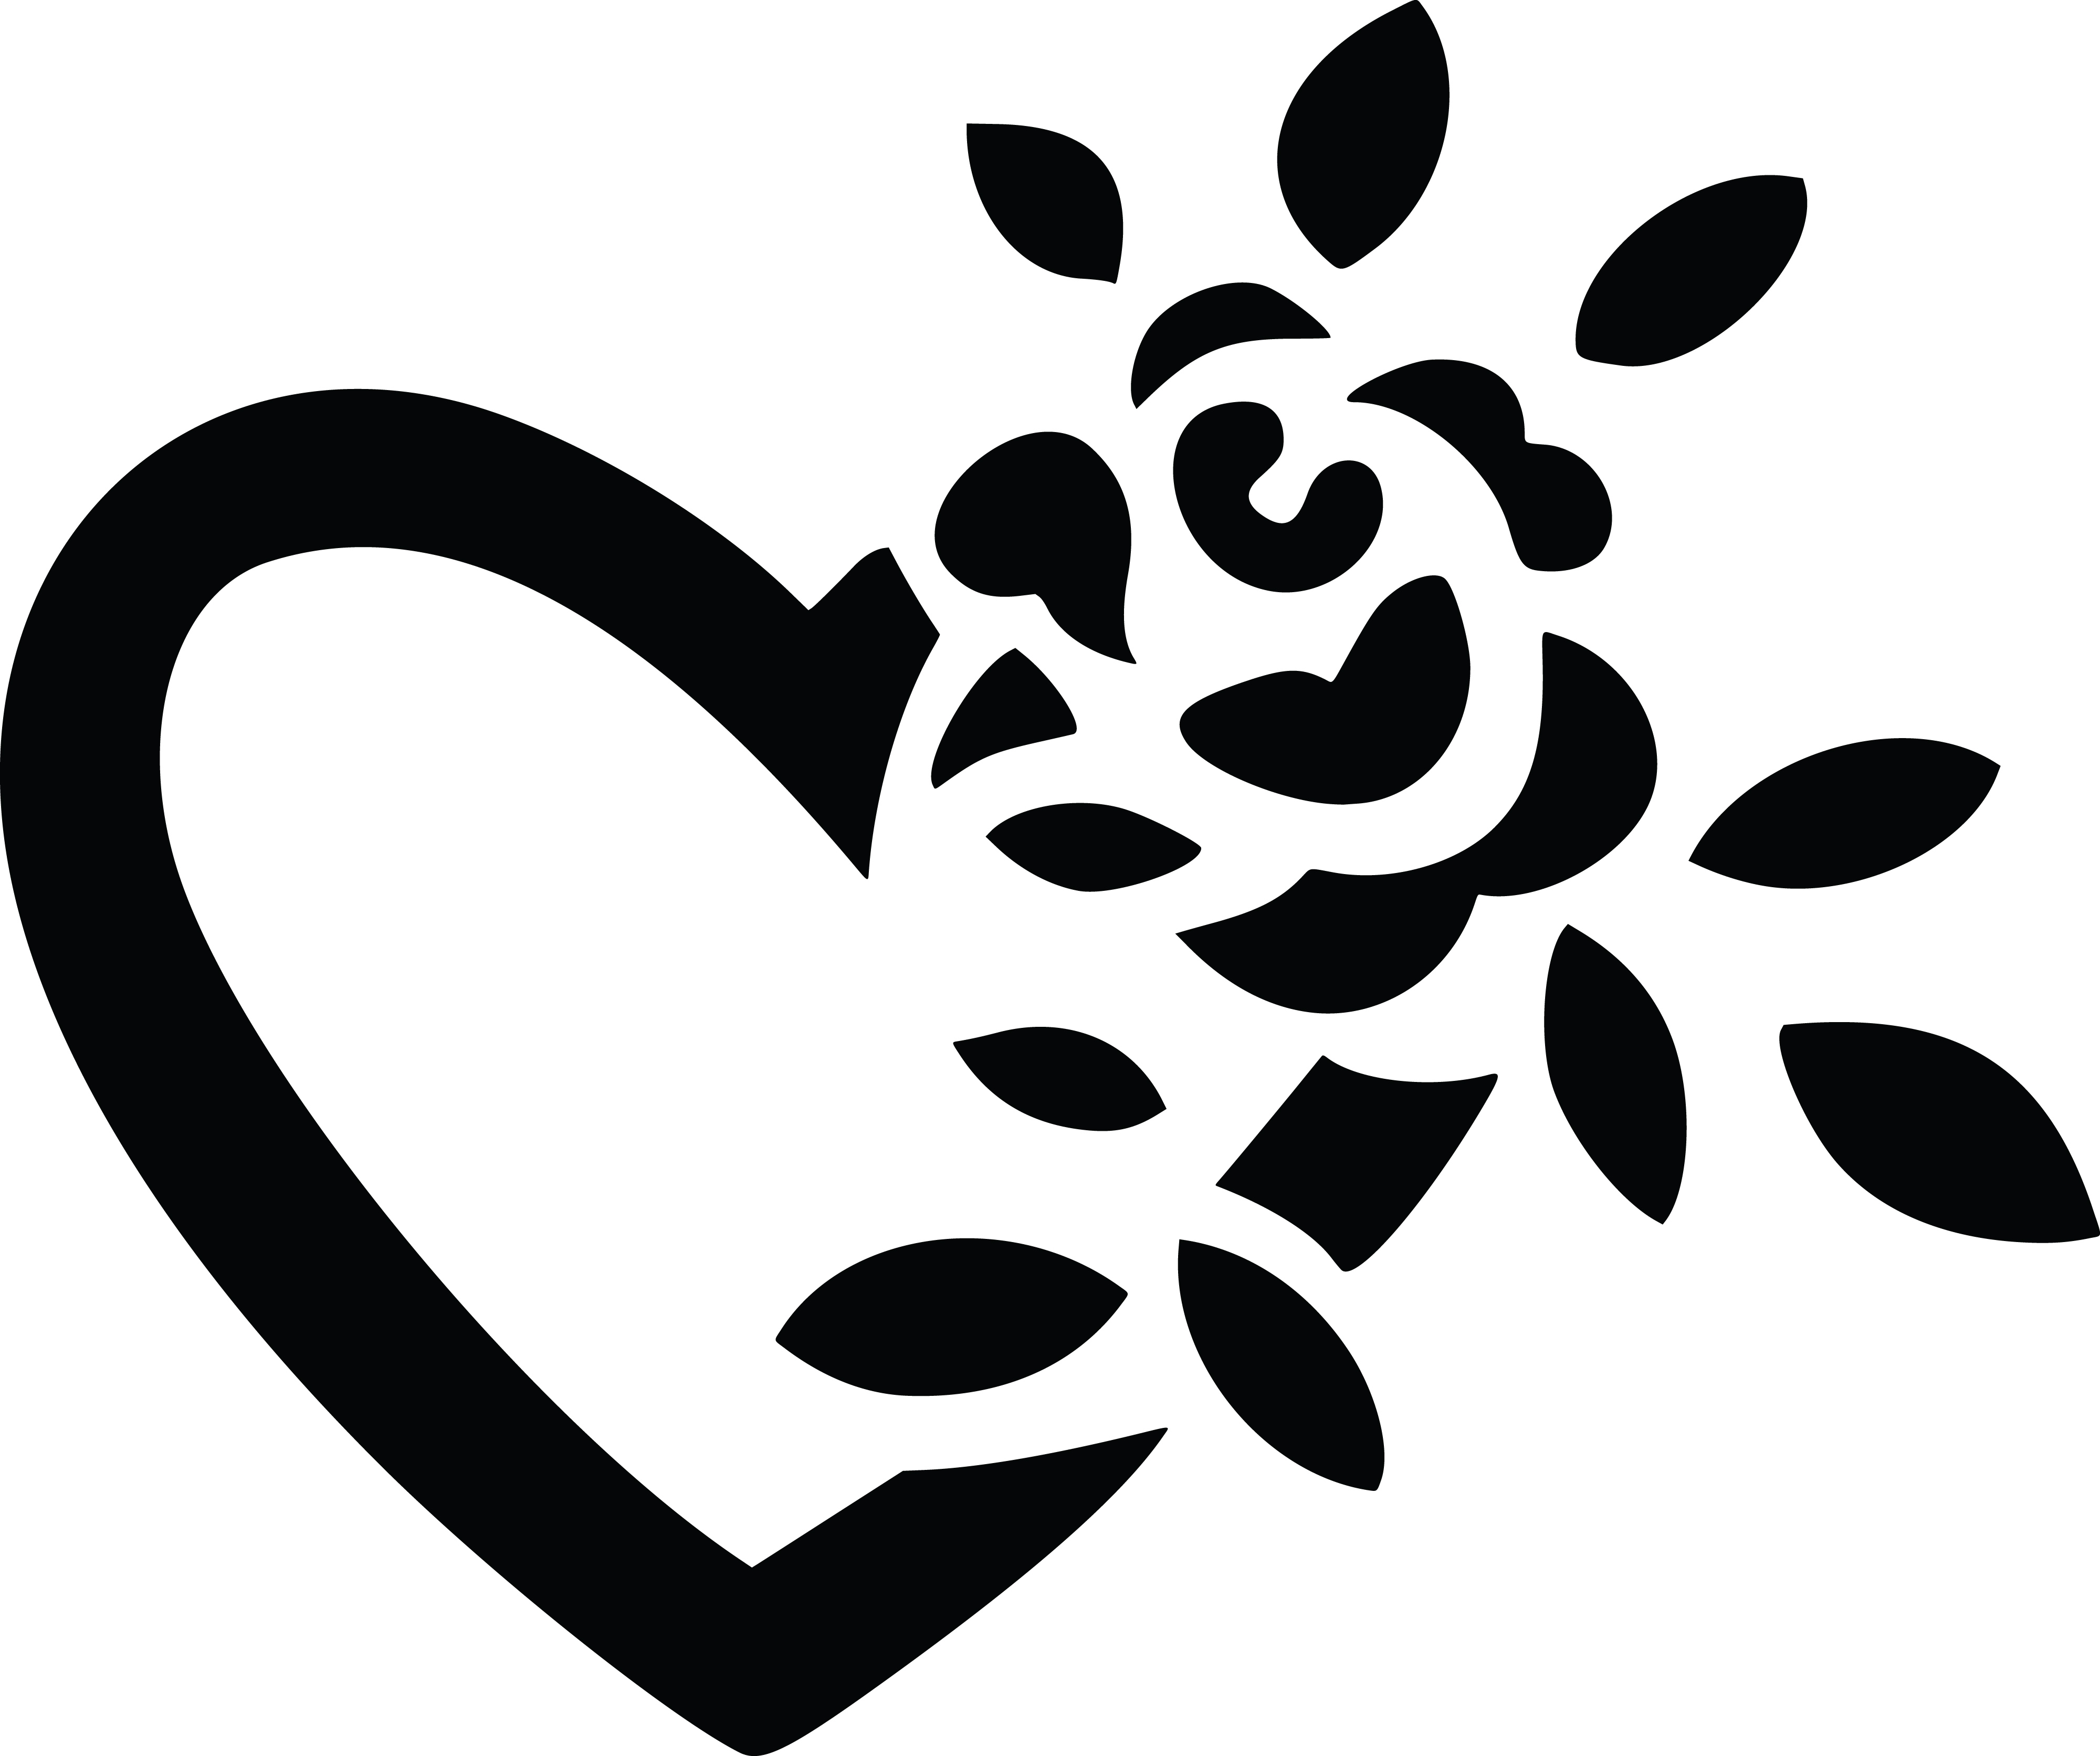 Clipart of a black and white fully bloomed rose and love heart free clipart of a black and white fully bloomed rose and love heart buycottarizona Gallery